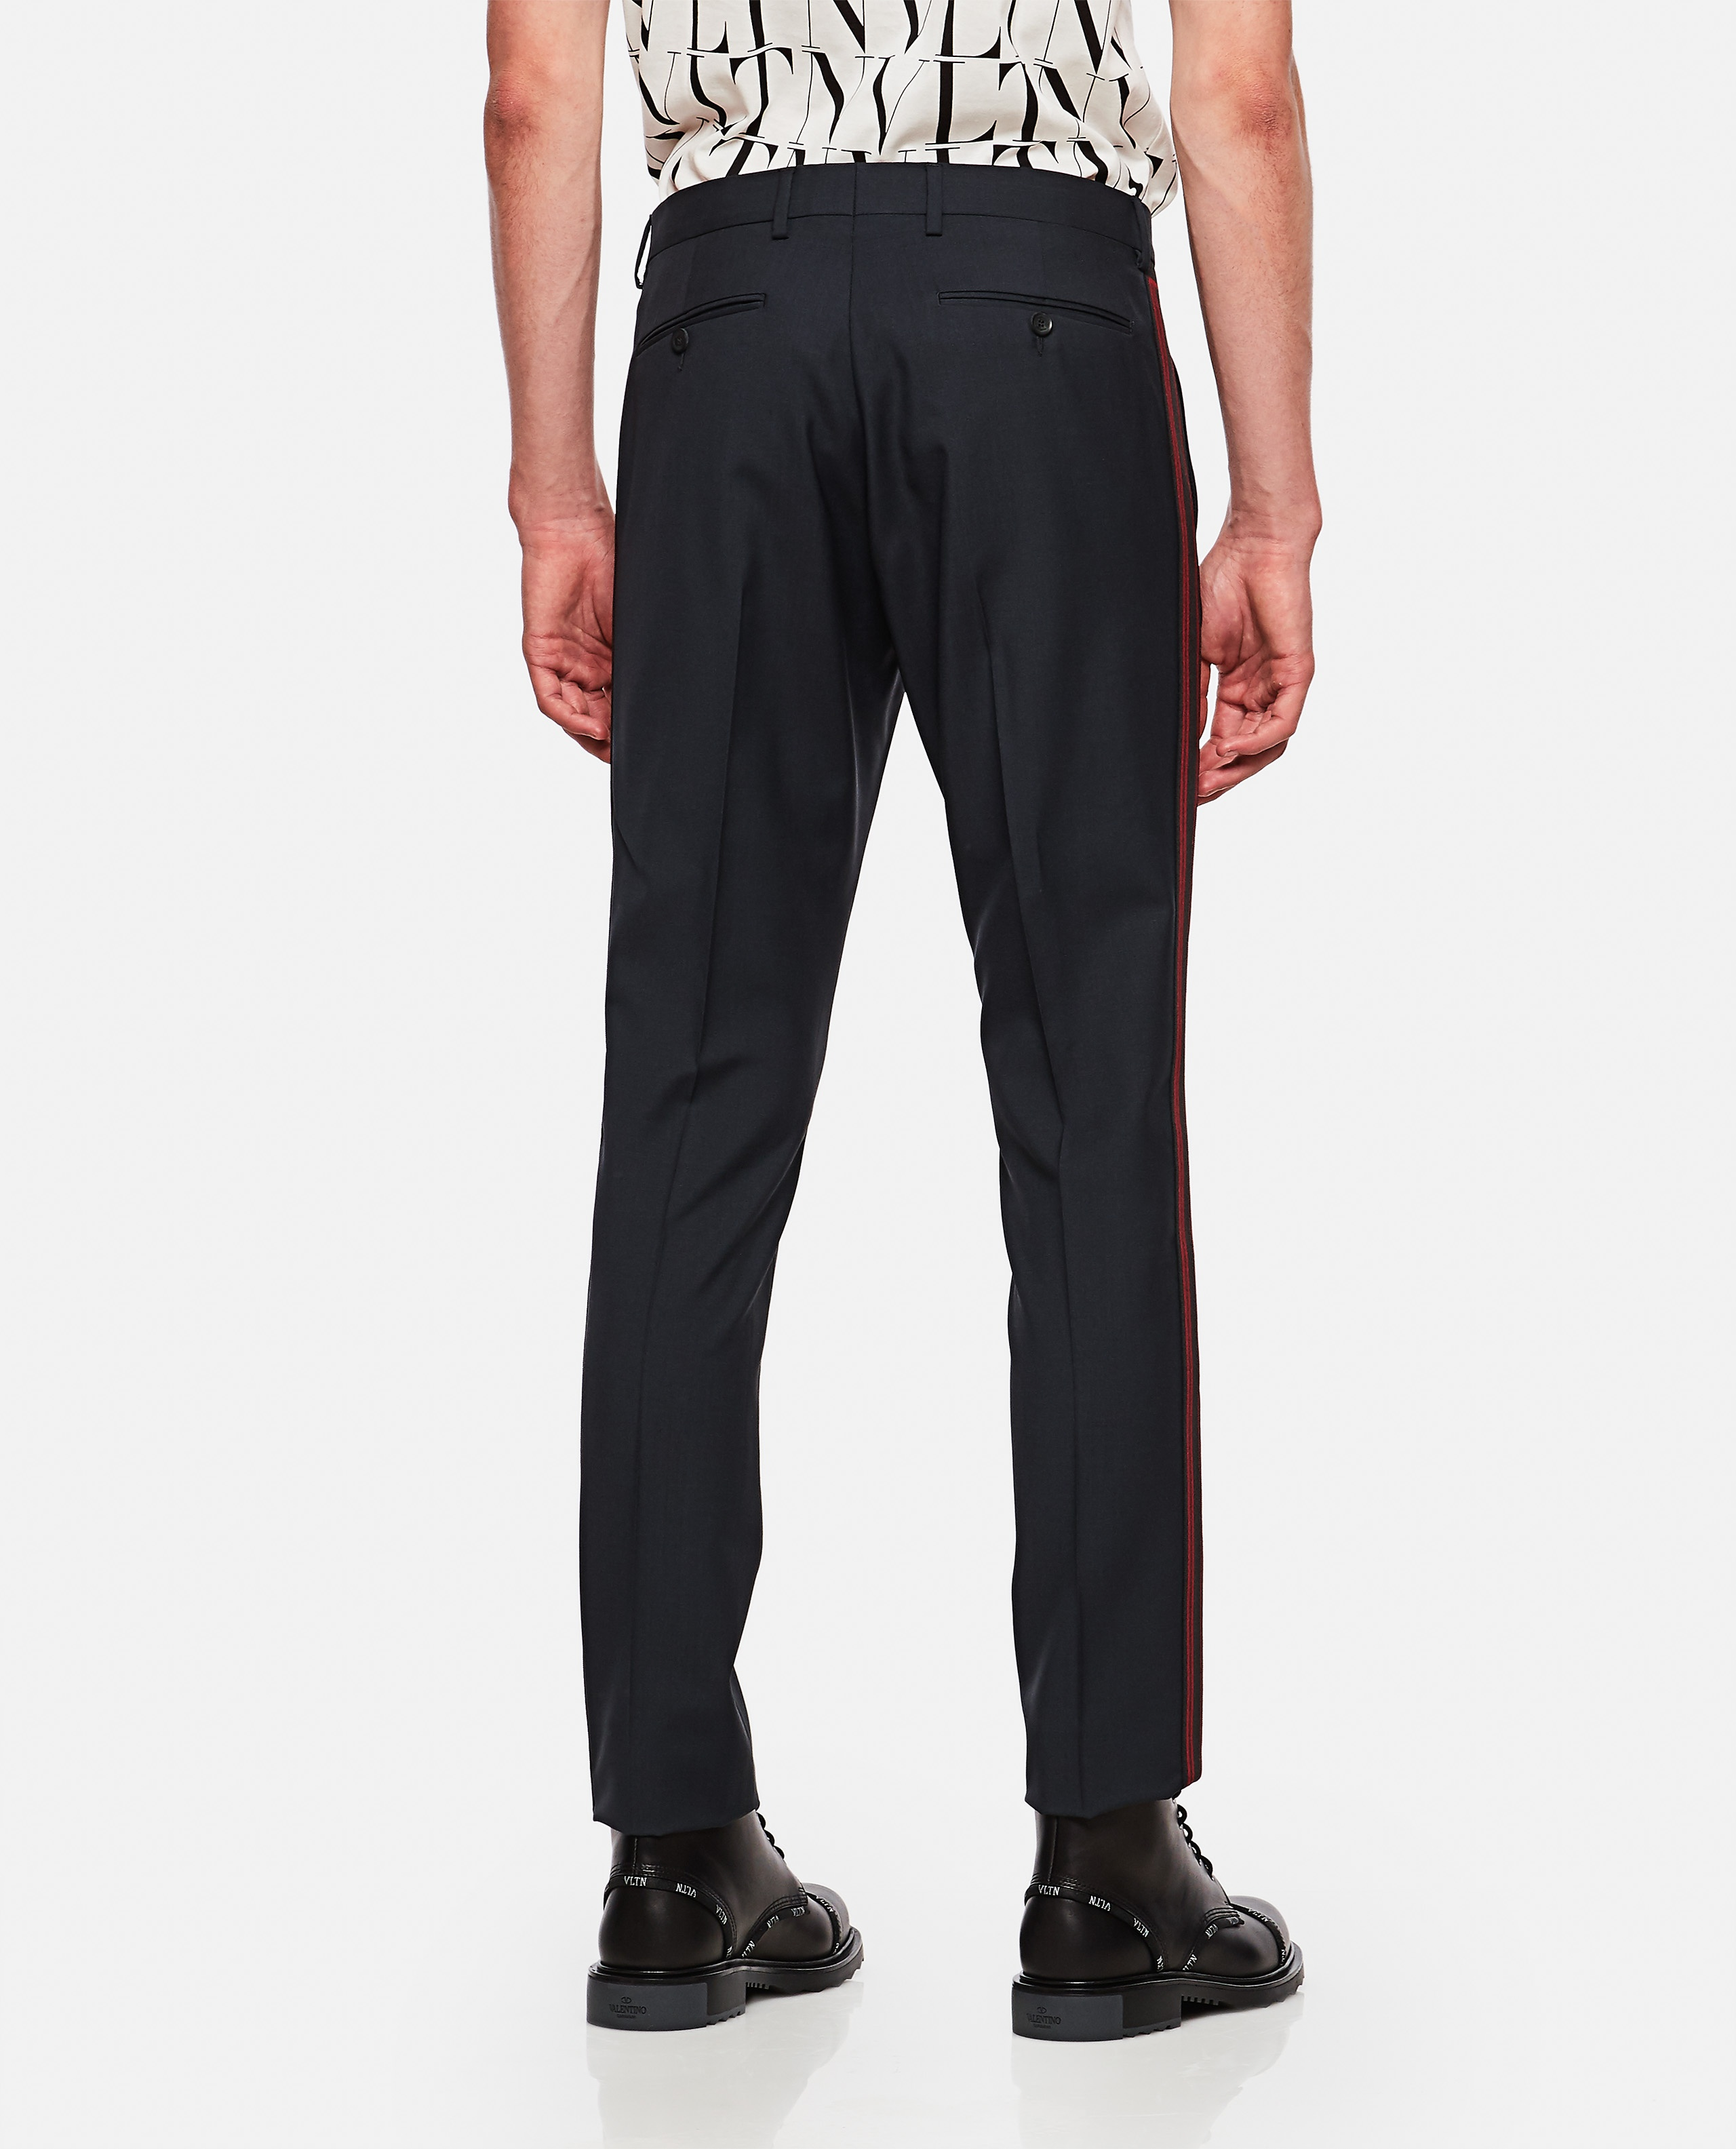 Slim fit trousers Men Valentino 000263490038956 3